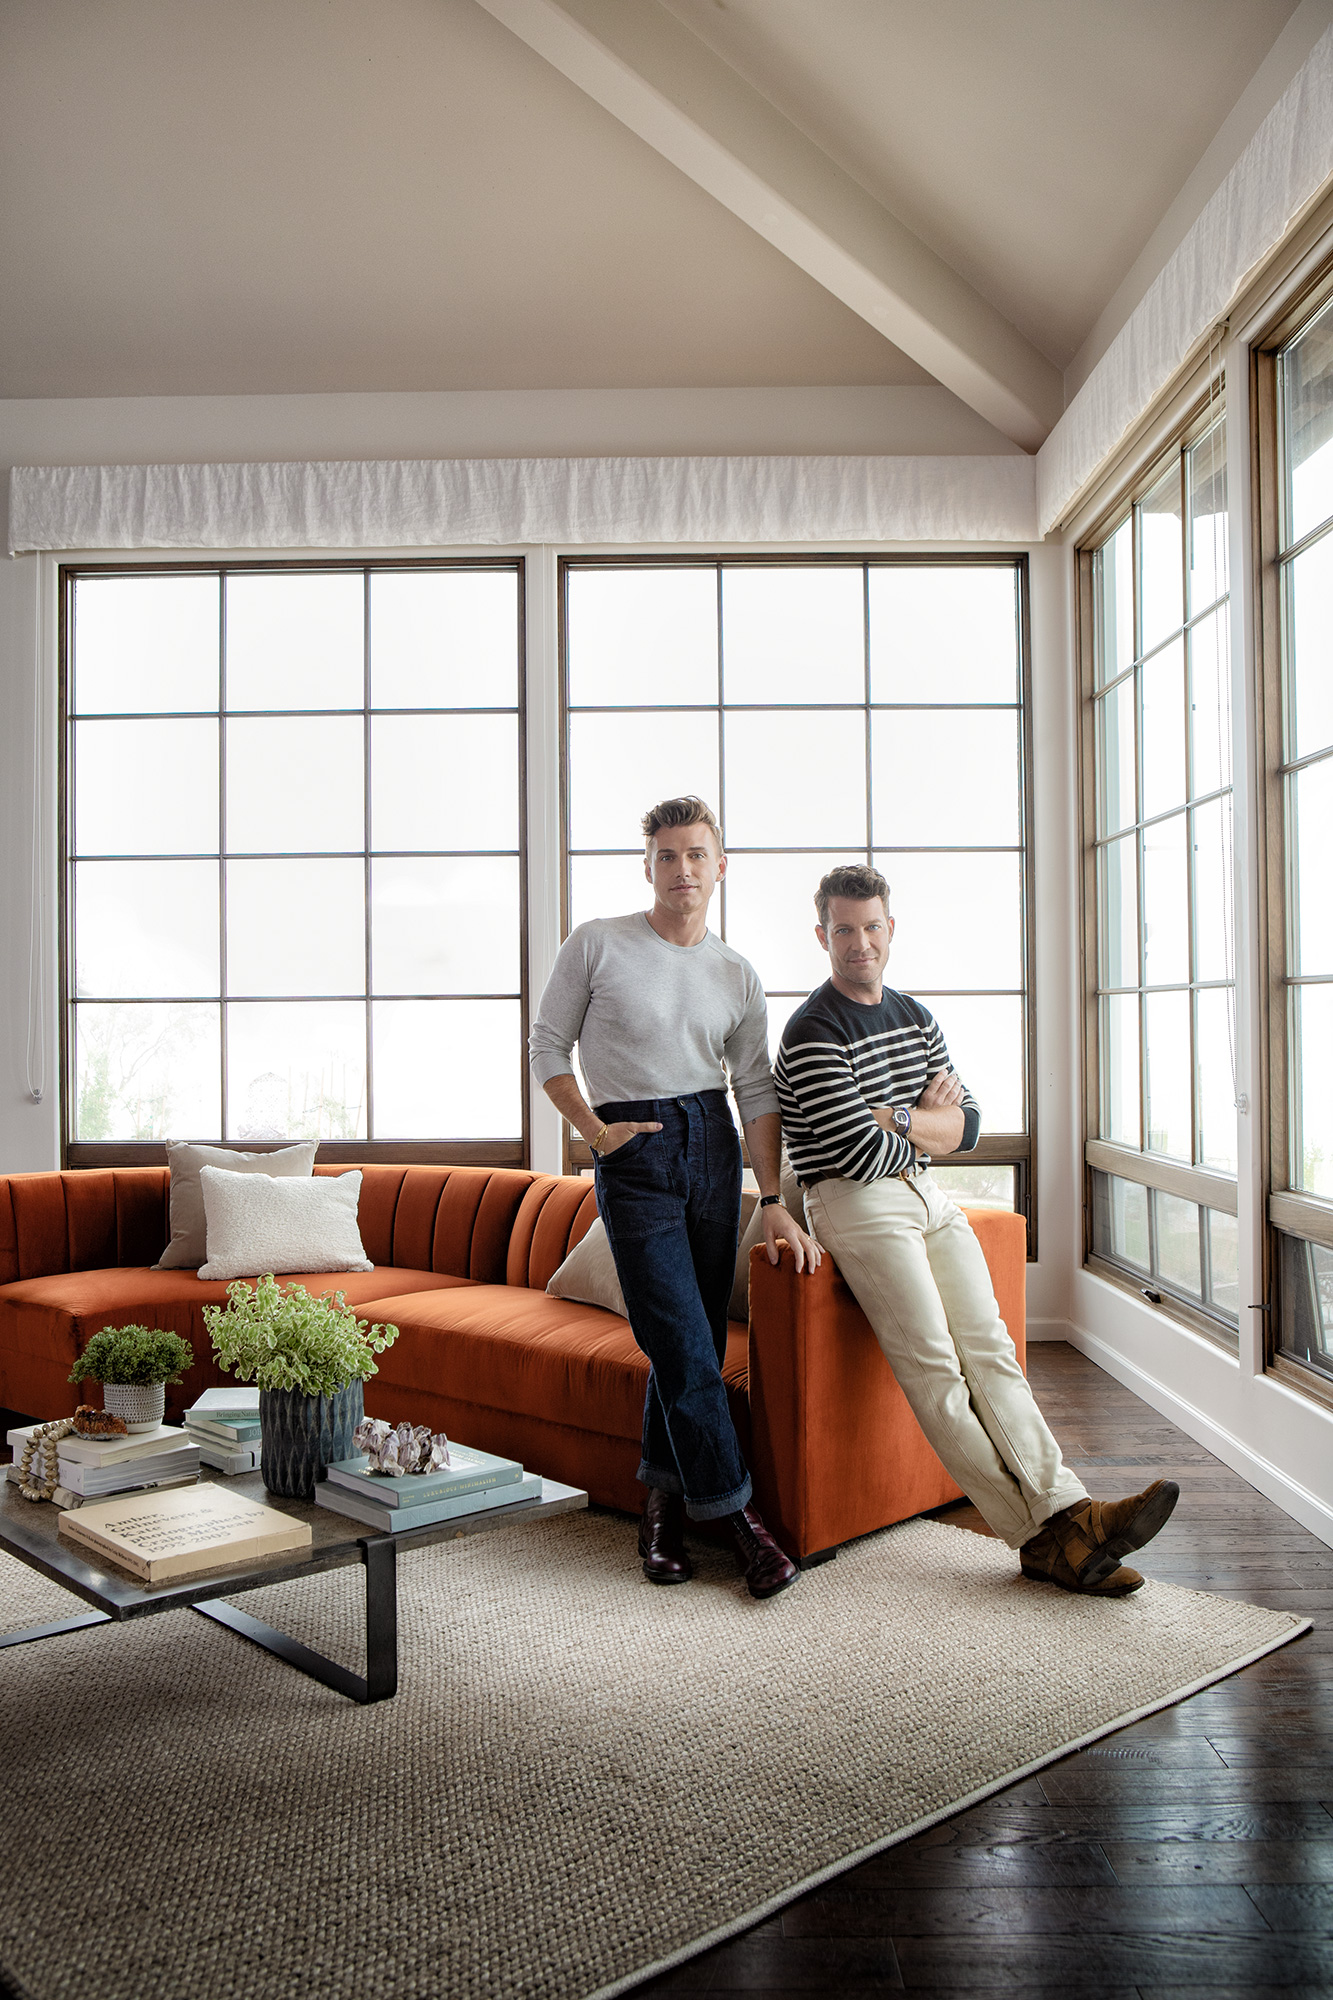 here great painted drum side table nate berkus jeremiah brent living spaces tibetan accent and debut furniture line inspired their own home gold floor lamp whitewash sofa bench